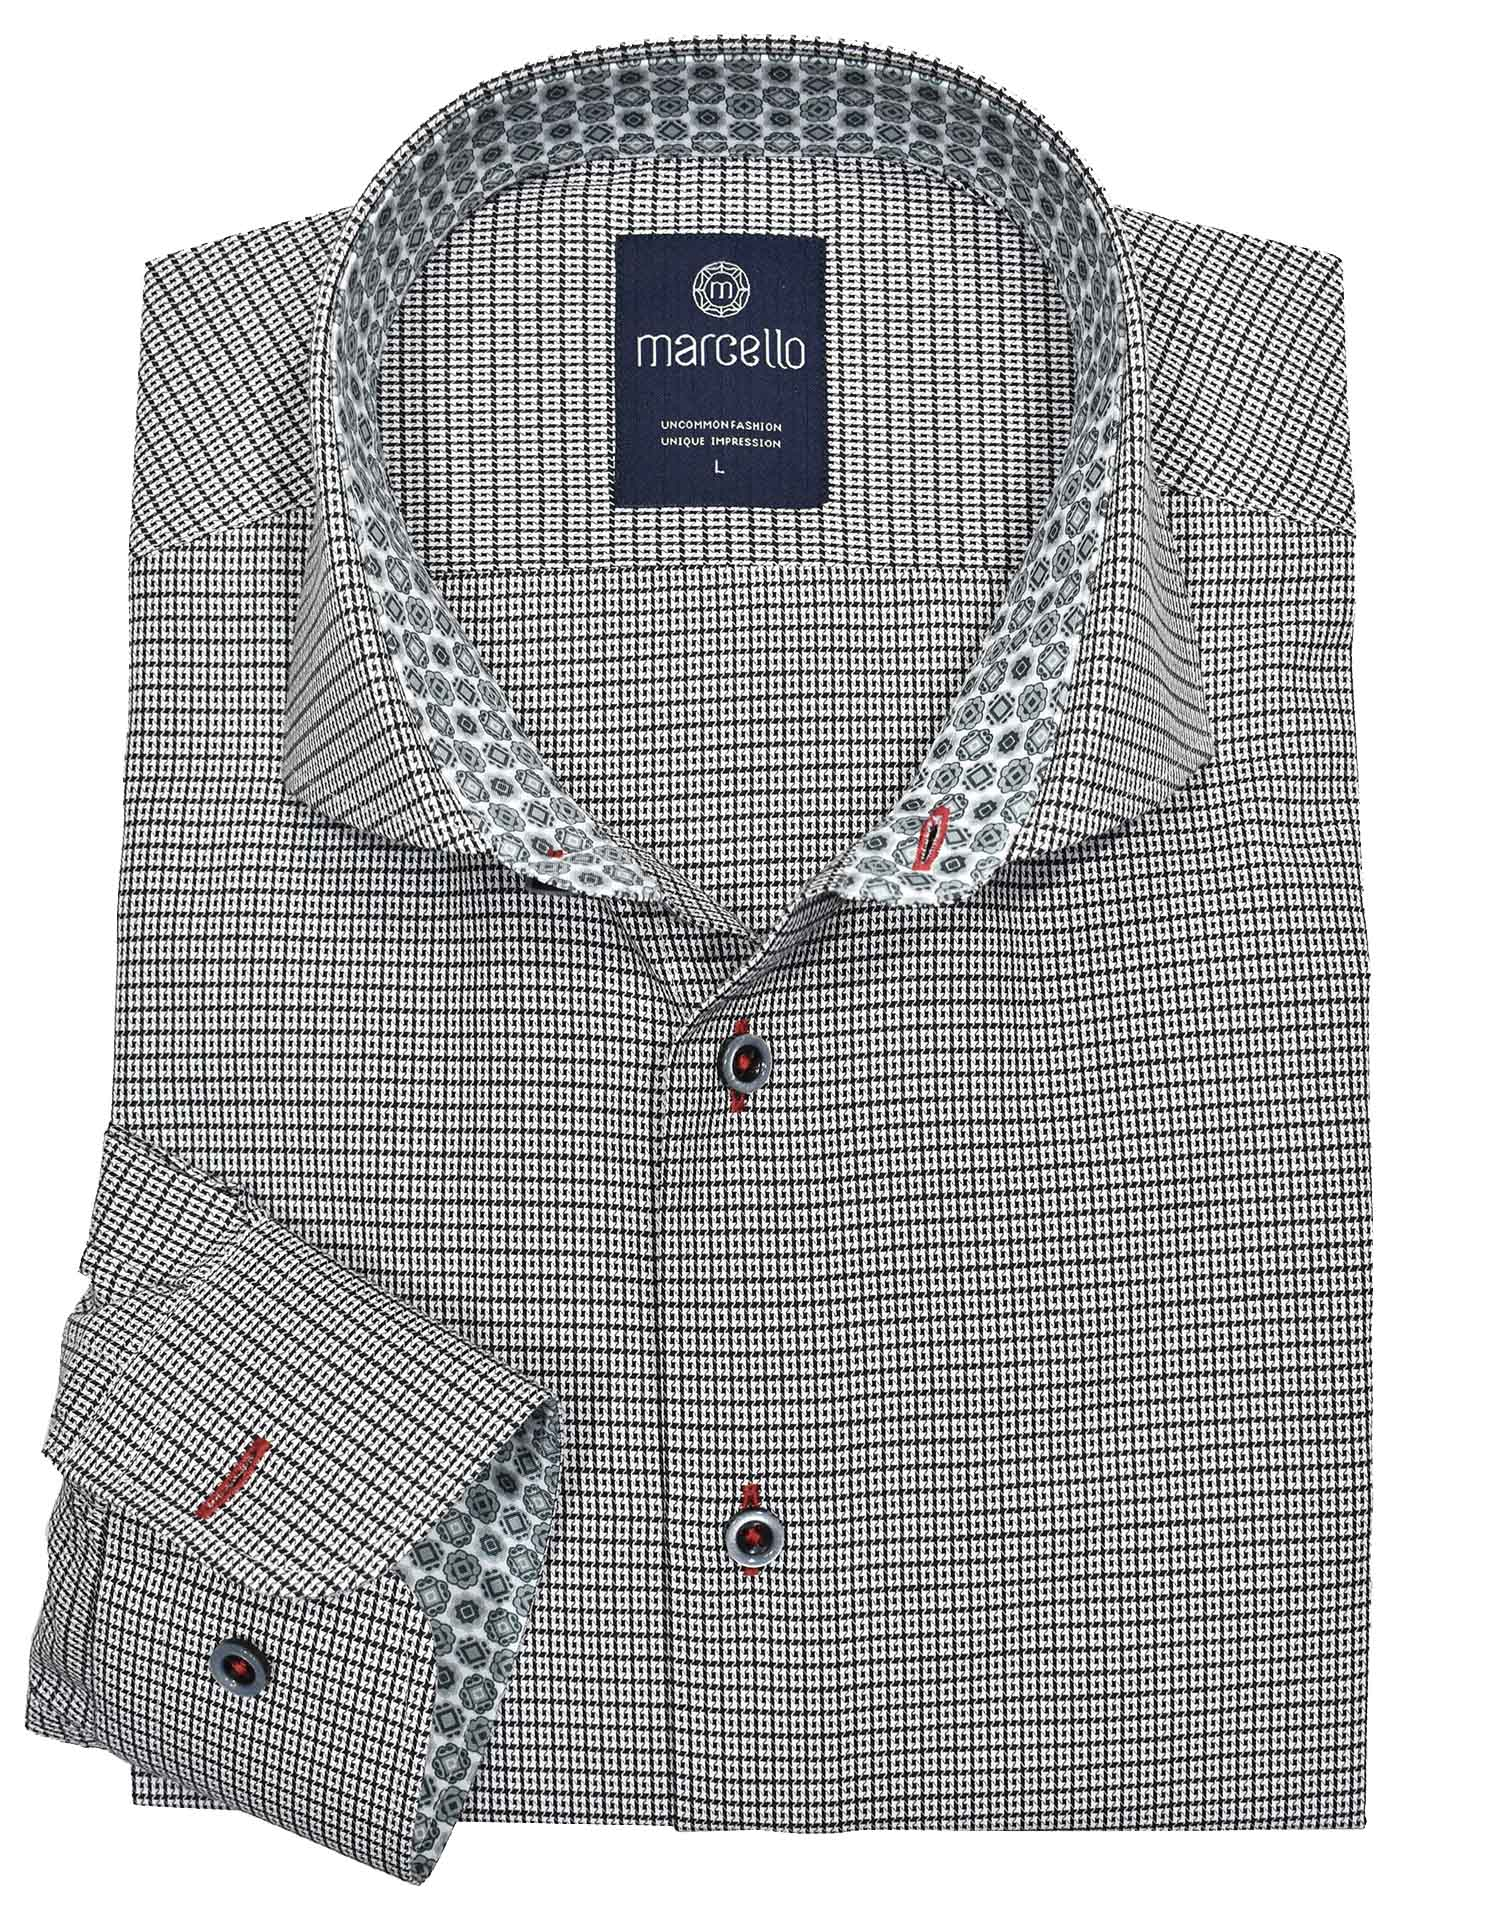 W256 Checkbox Sport Shirt - Marcello Sport